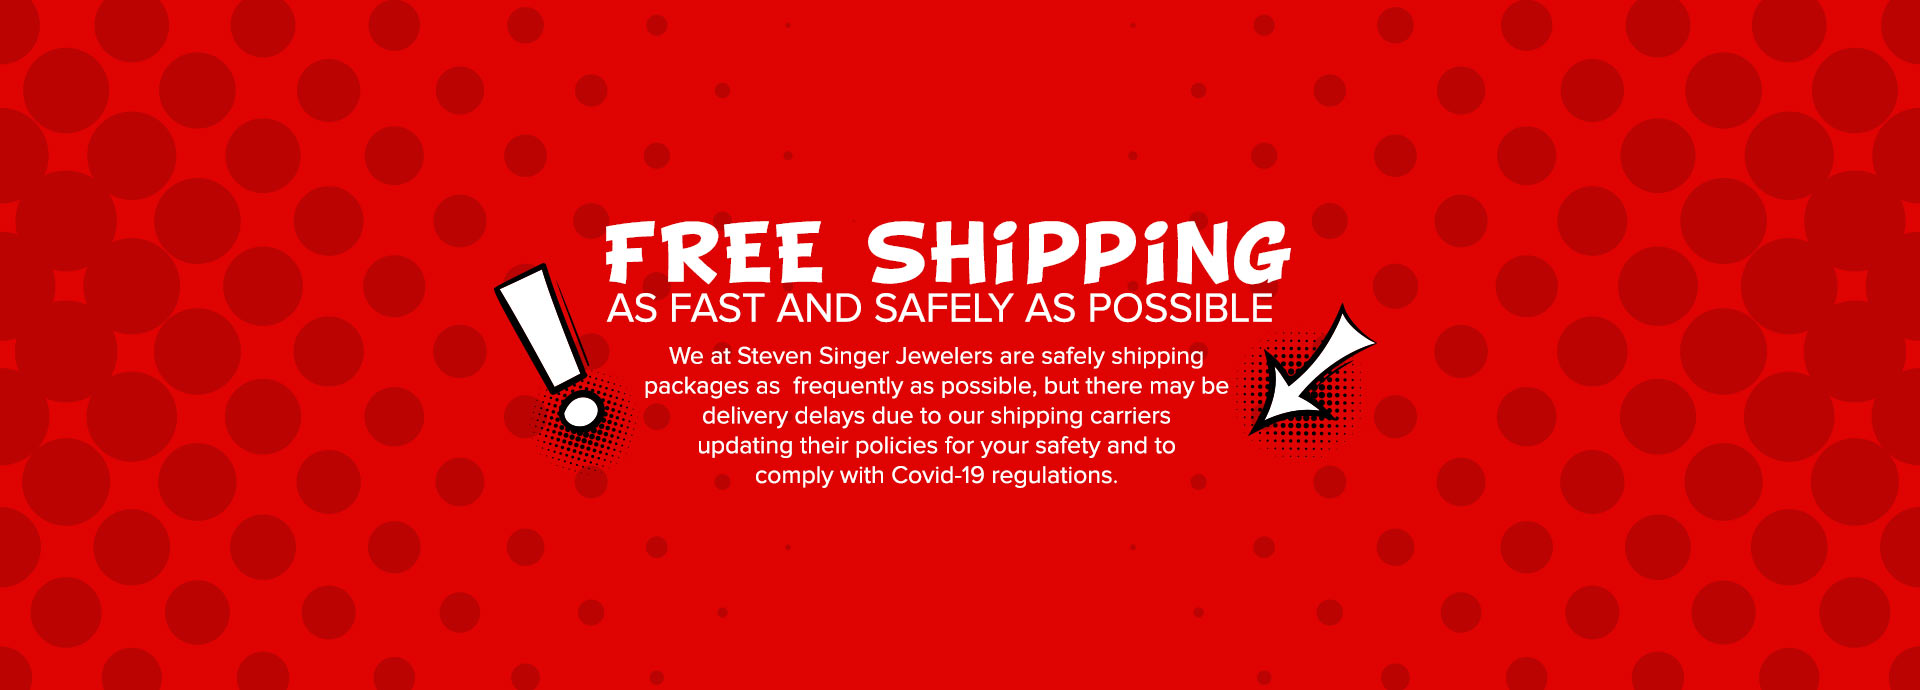 Free Shipping as Fast and Safe as Possible due to COVID-19